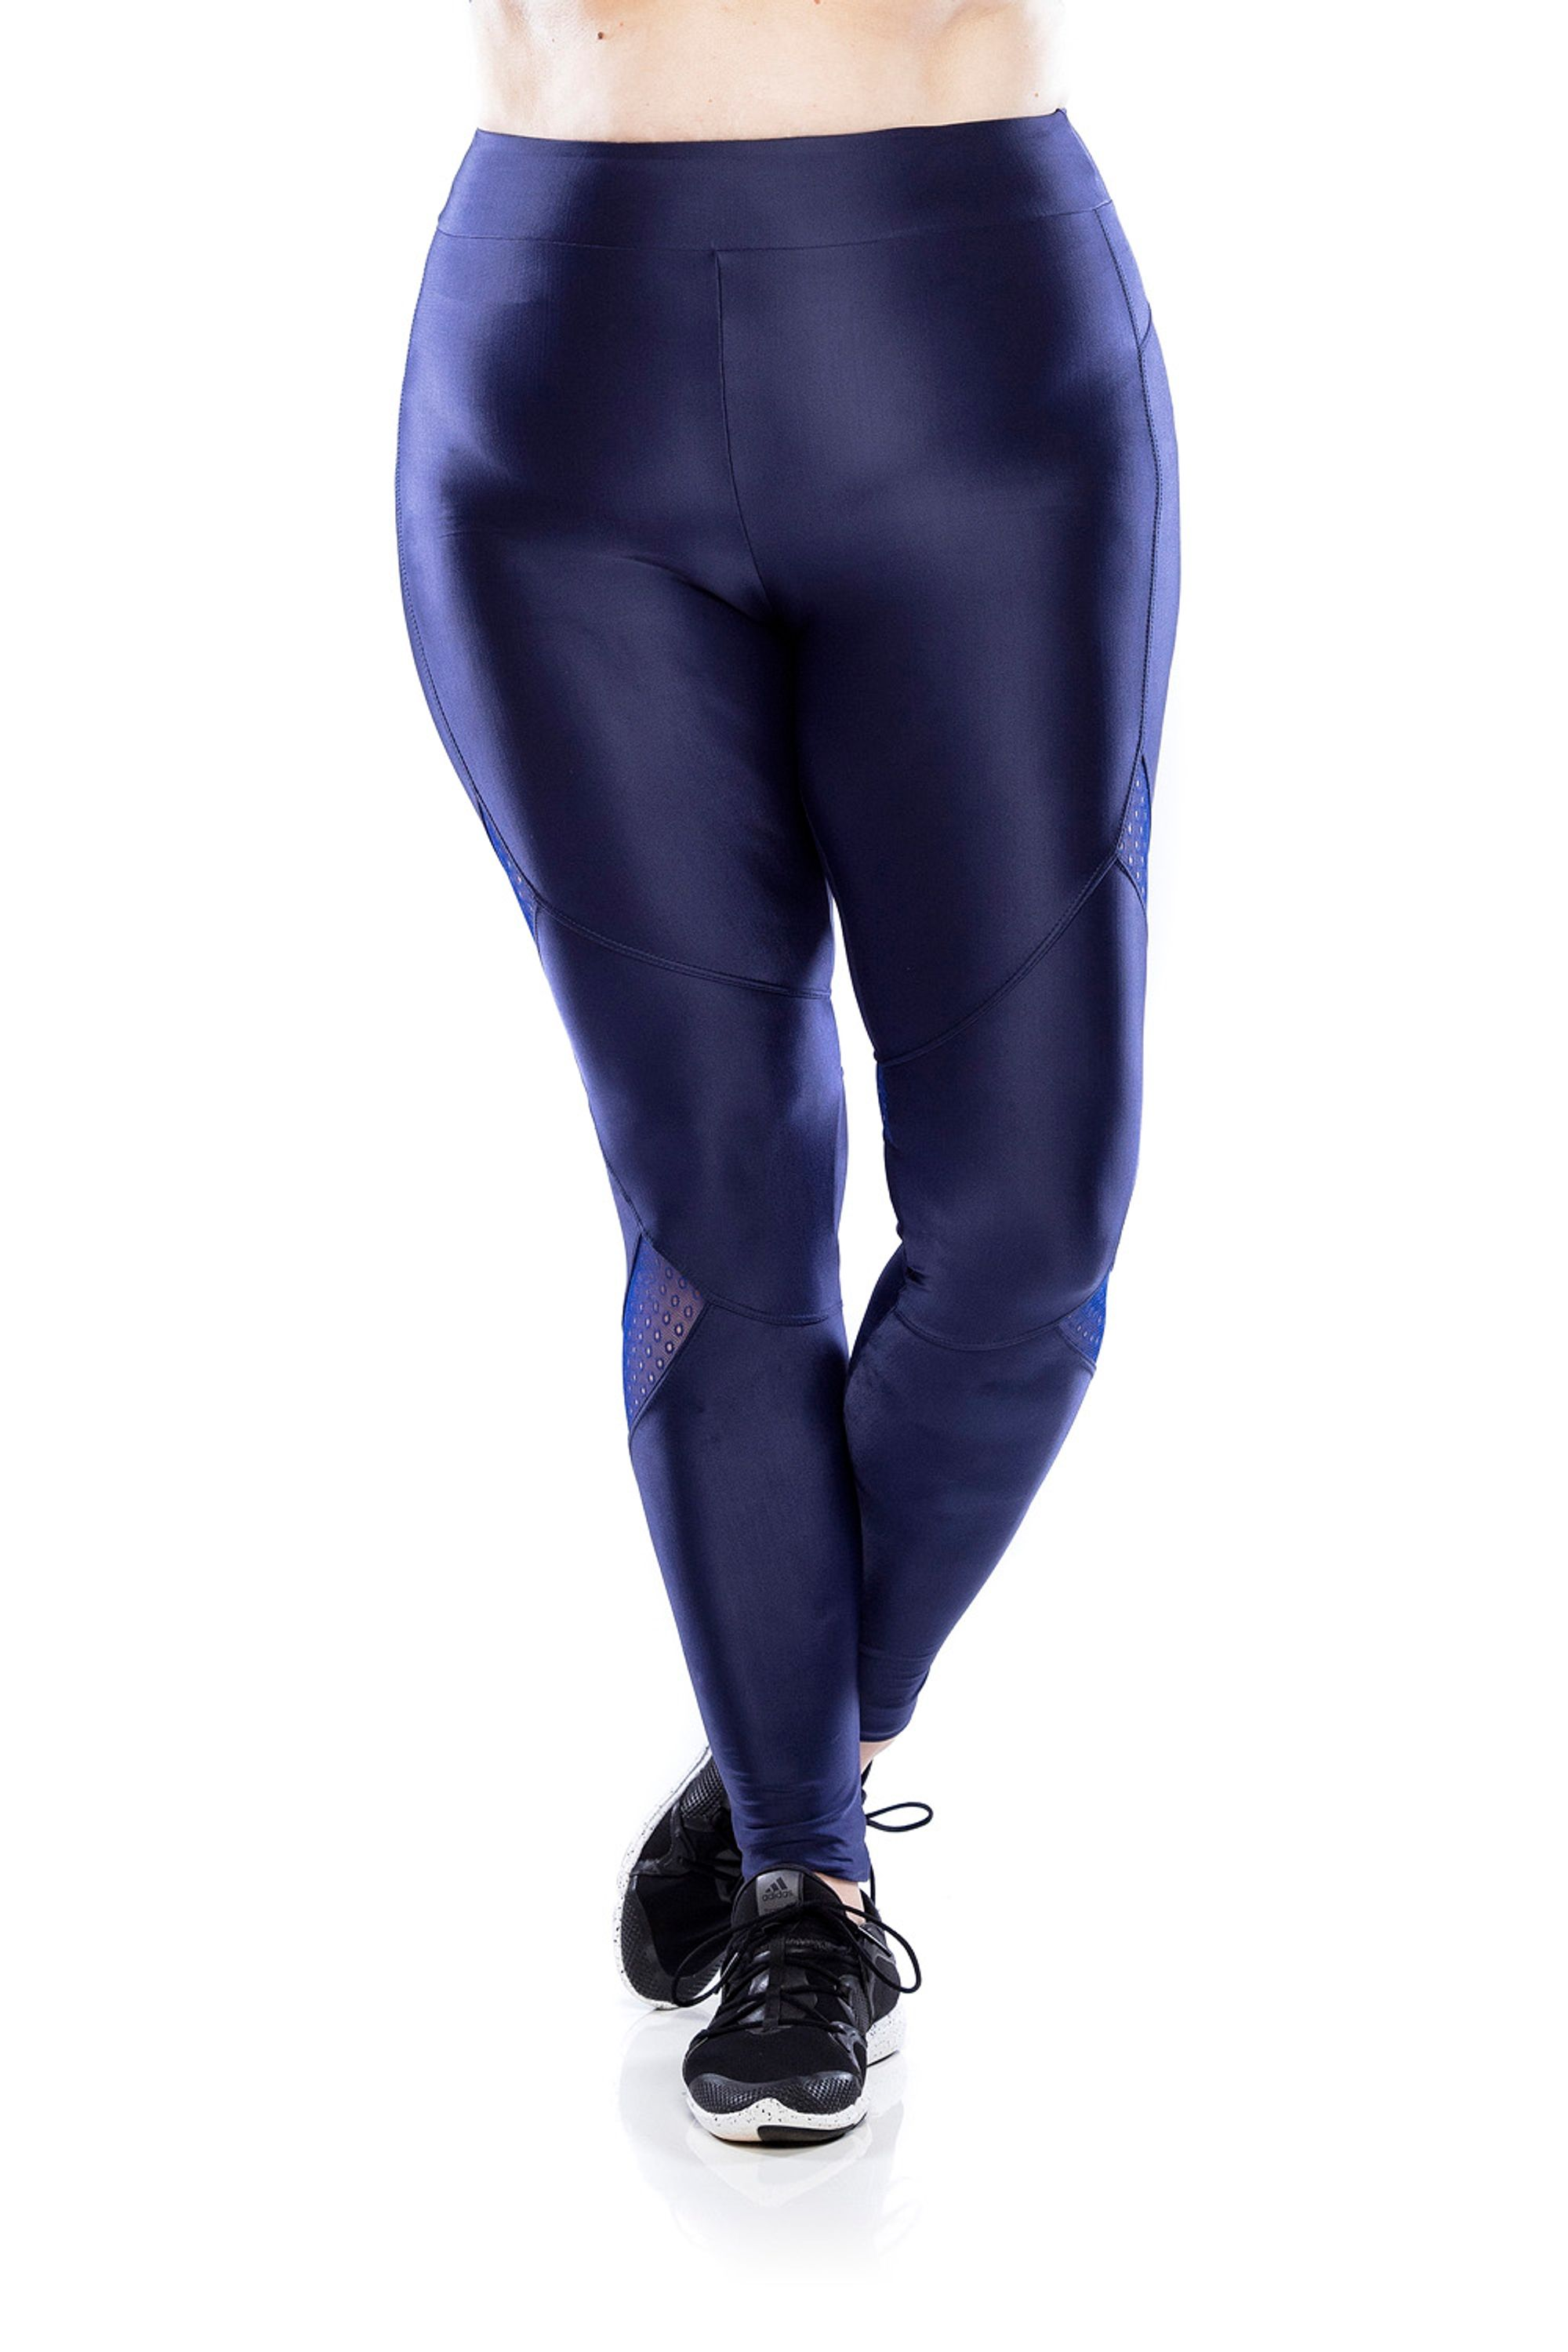 c0b44a2f4 legging-fitness-plus-size-micro-tule-moda-academia-fashion-calca ...